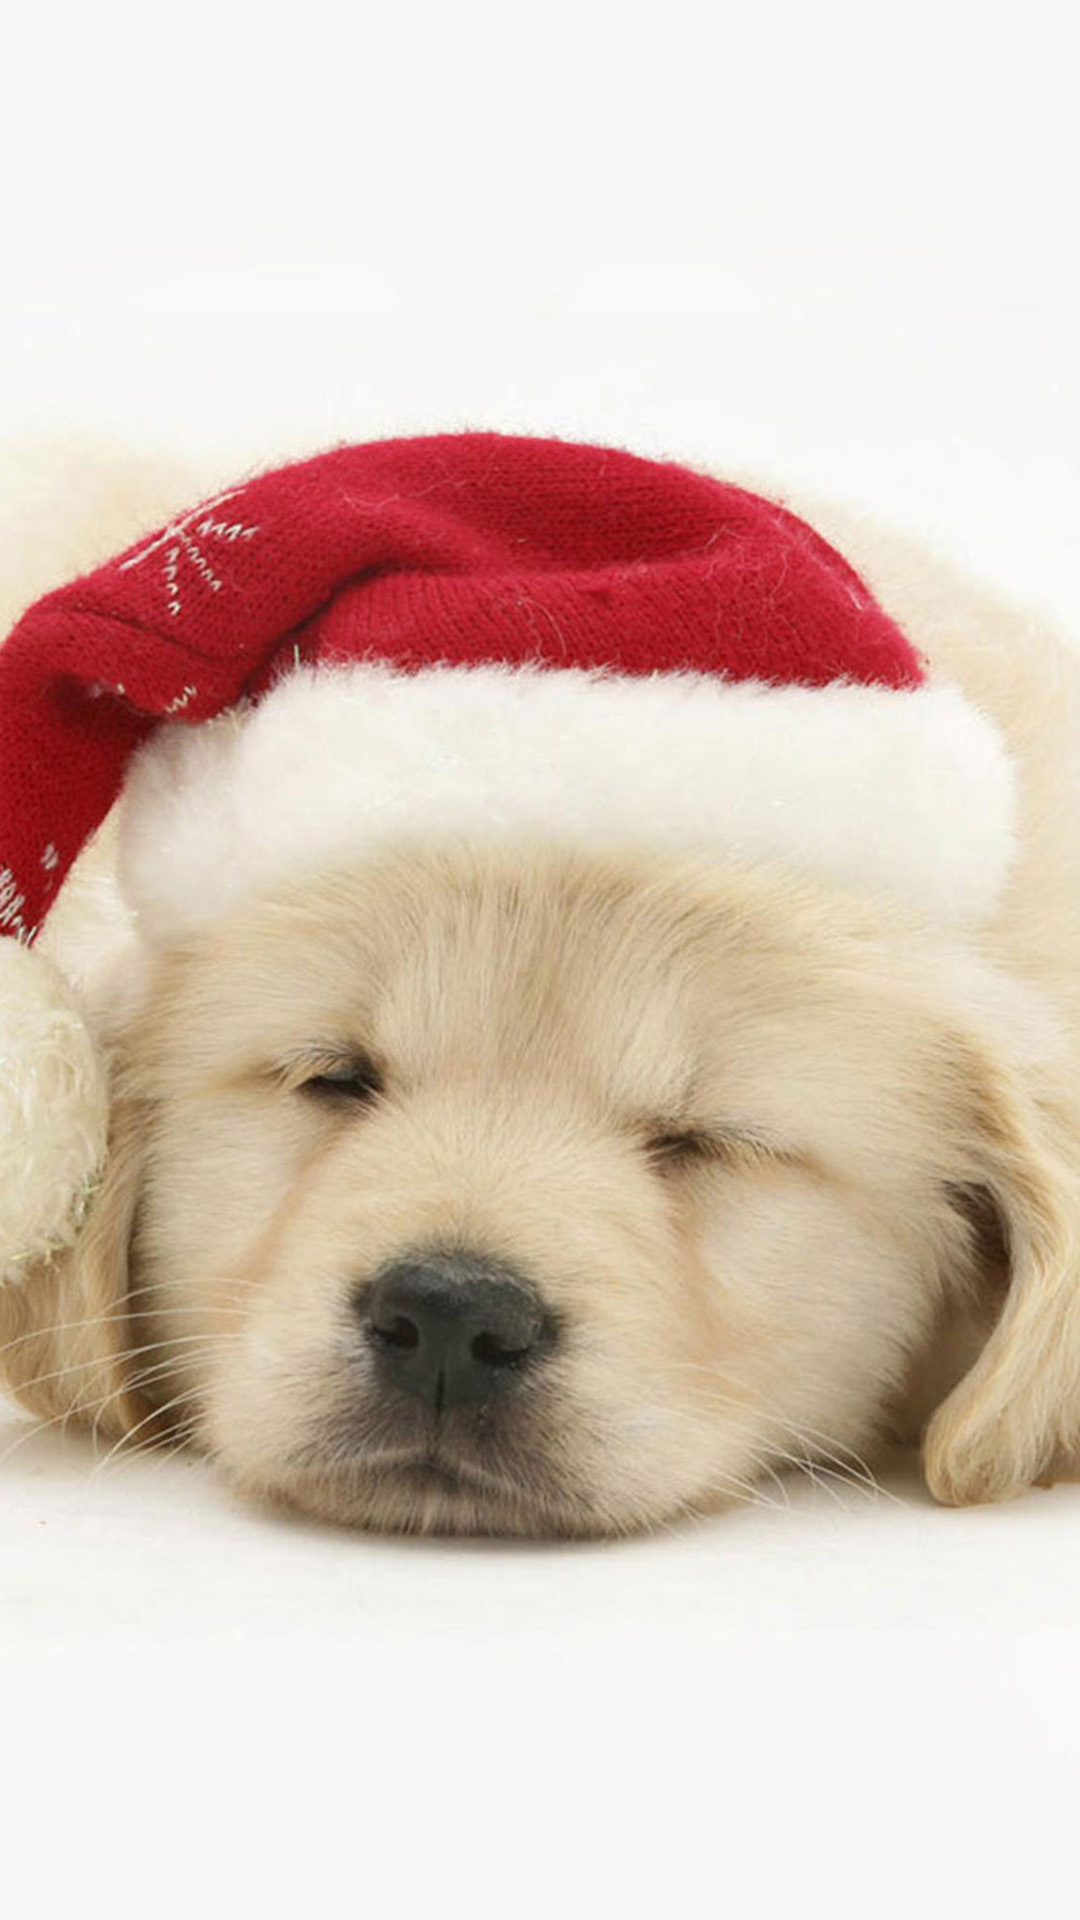 Cute Puppy In Christmas Hat iphone images.